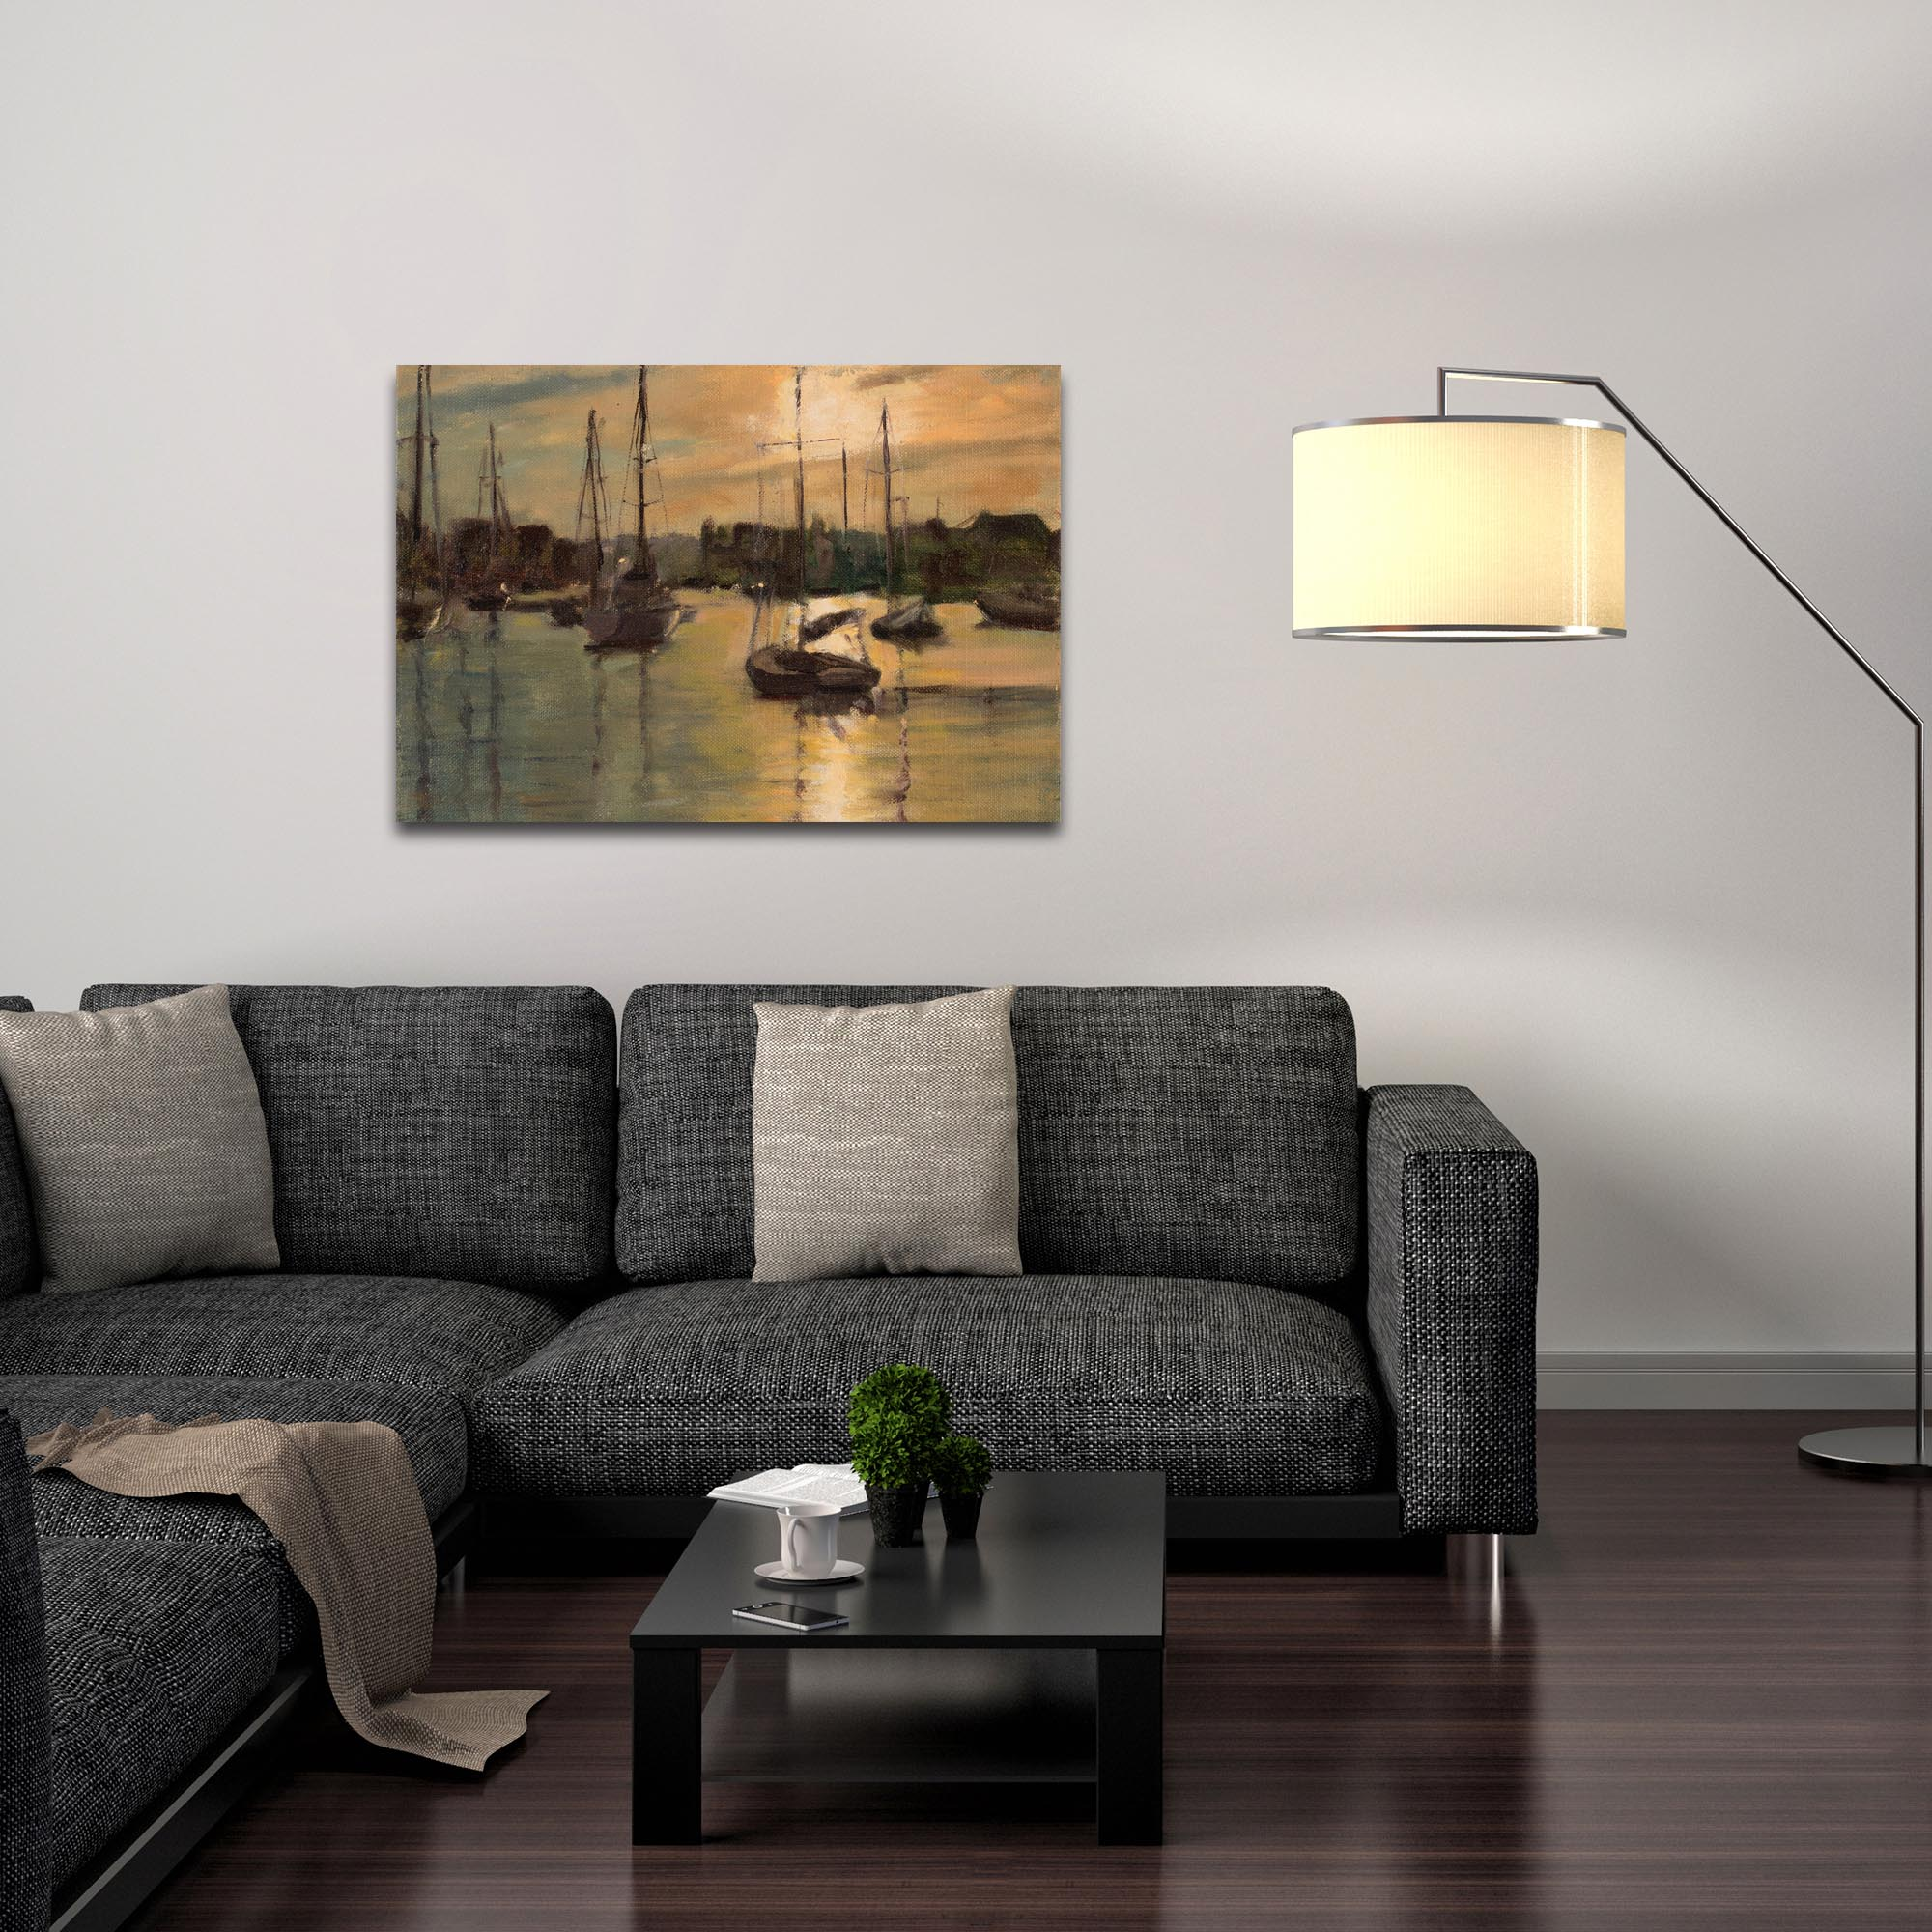 Coastal Wall Art 'Harbor 3' - Boats Decor on Metal or Plexiglass - Lifestyle View